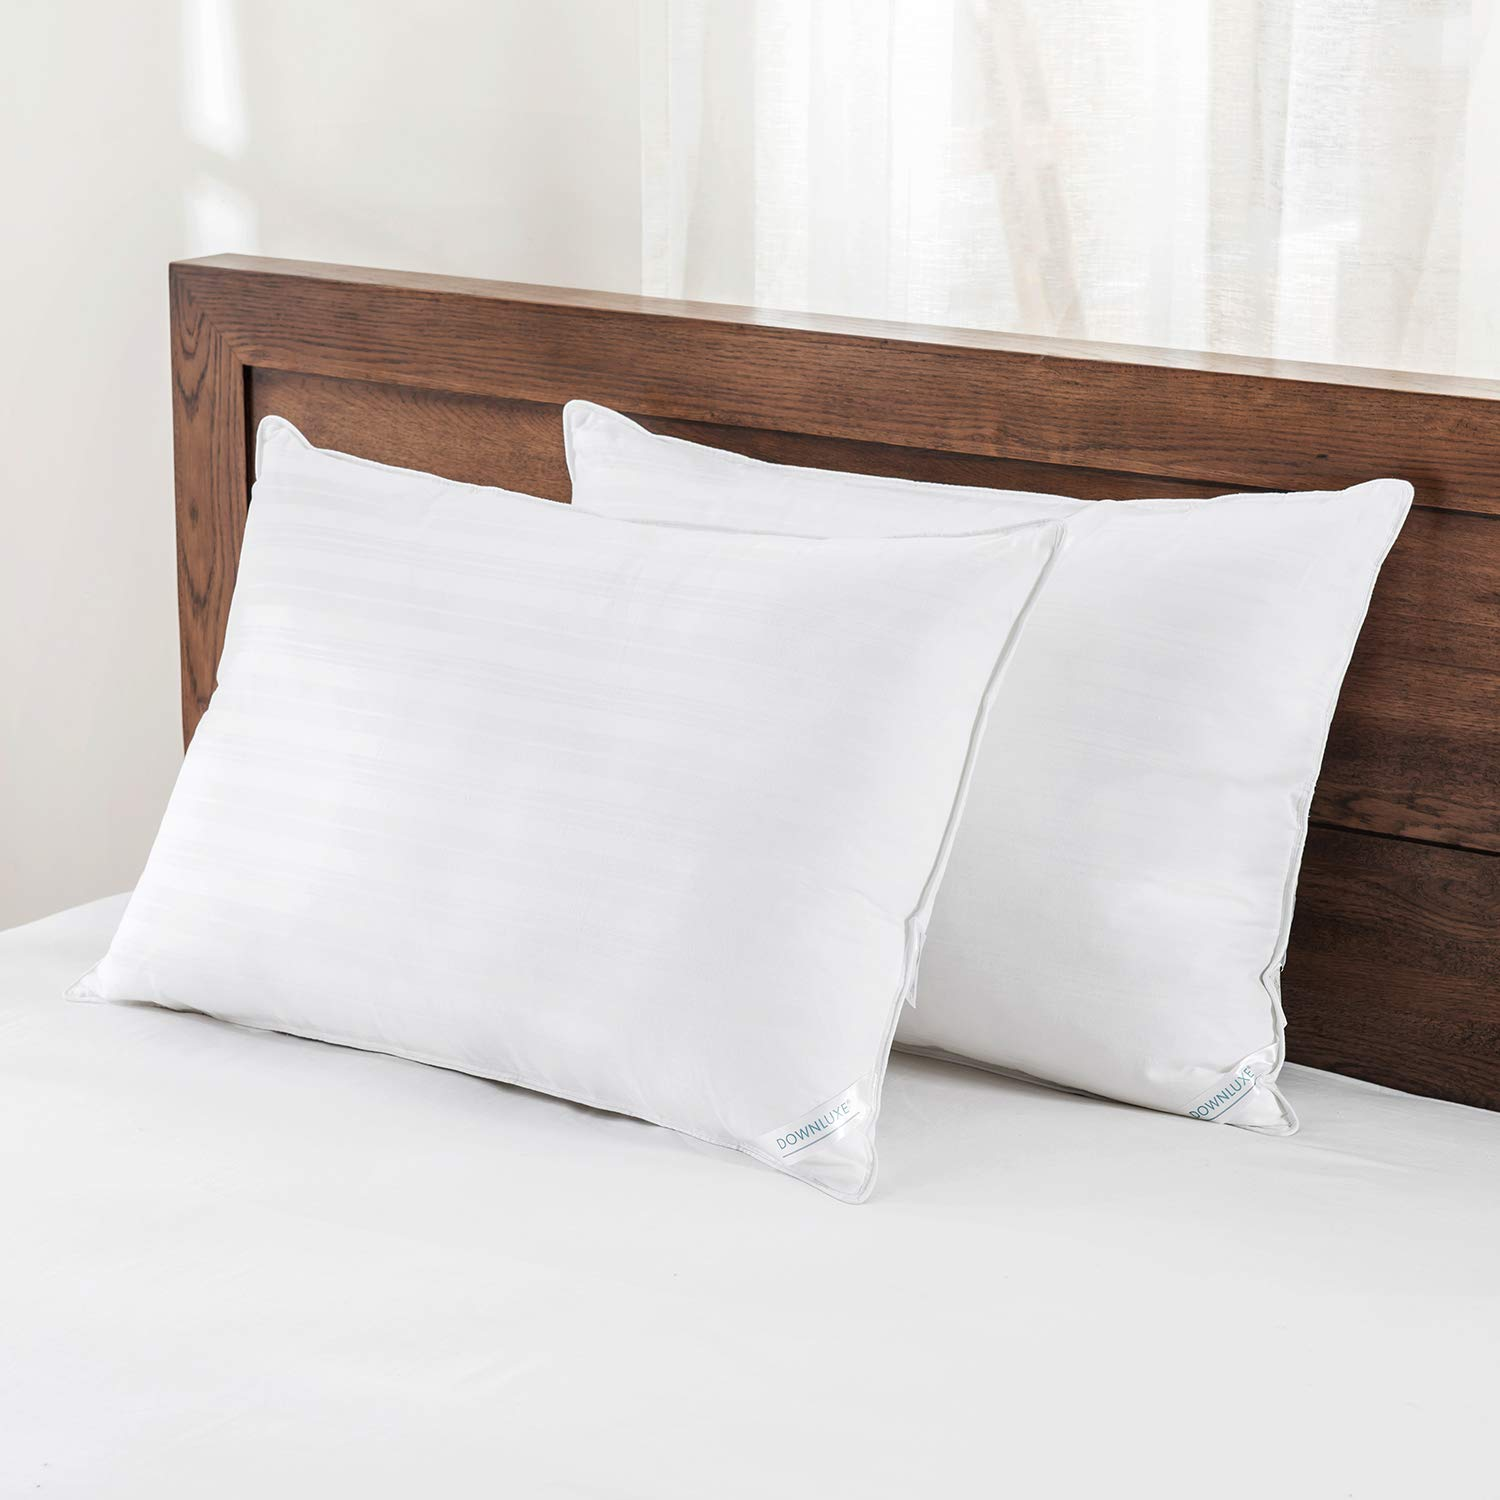 downluxe Down Alternative Bed Pillows Set of 2 Hypoallergenic Hotel Collection Fluffy Pillows for Sleeping,Standard Size 20x26